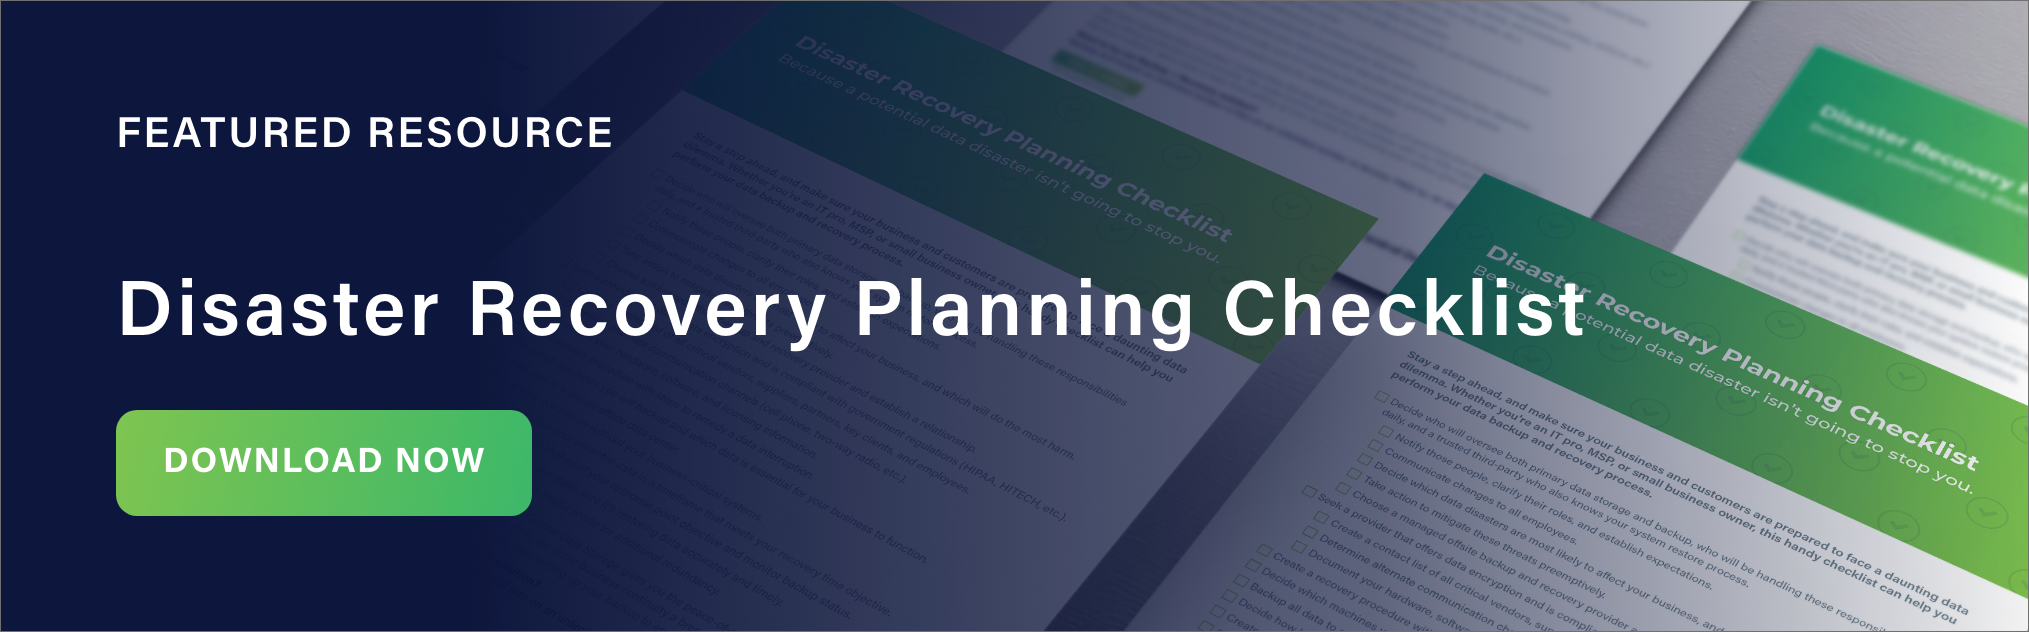 Disaster Recovery Planning Checklist CTA